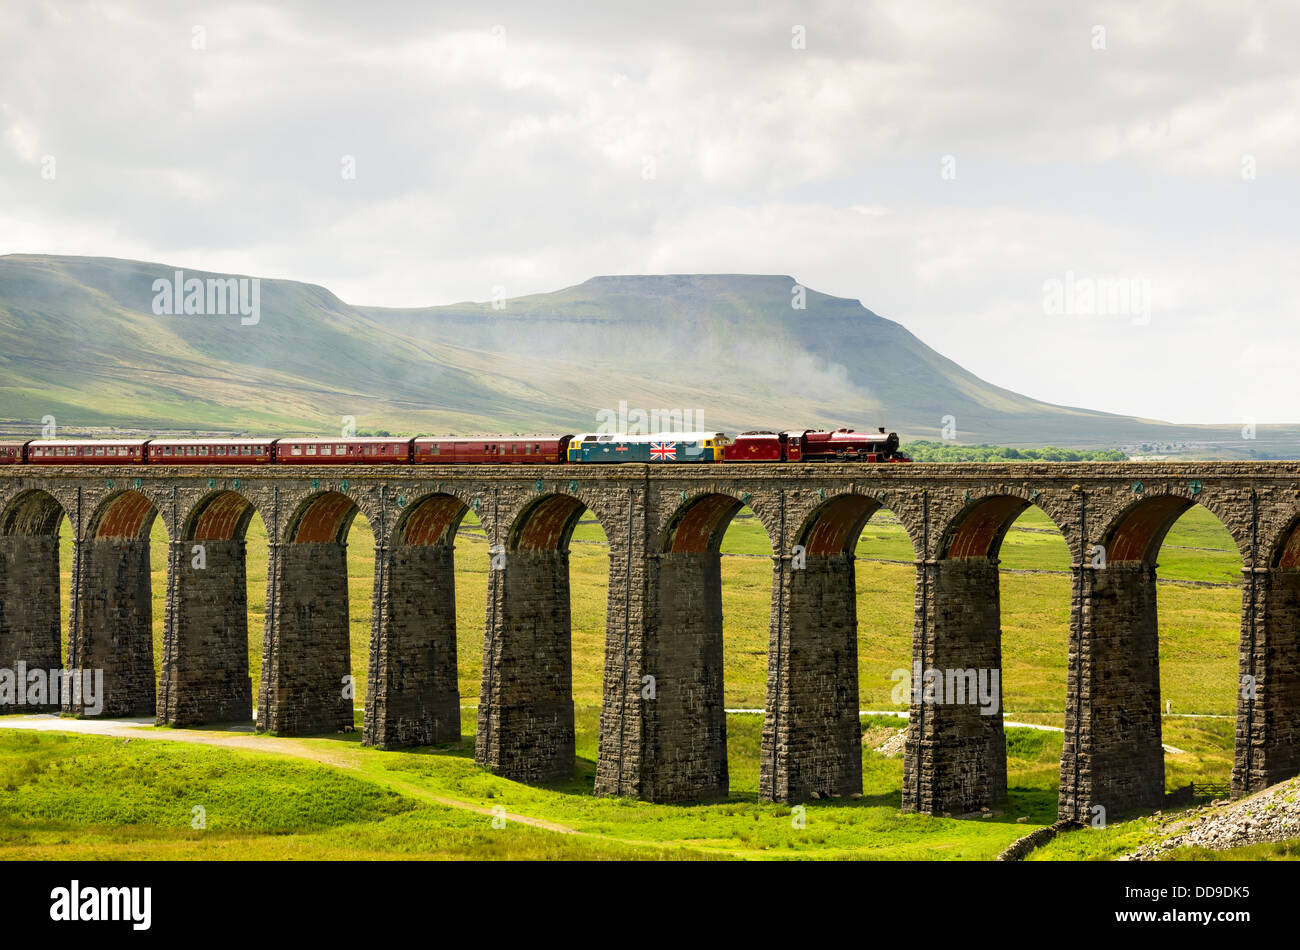 Steam engine 'Galatea' on the Ribblehead viaduct in the Yorkshire Dales with Ingleborough beyond. - Stock Image